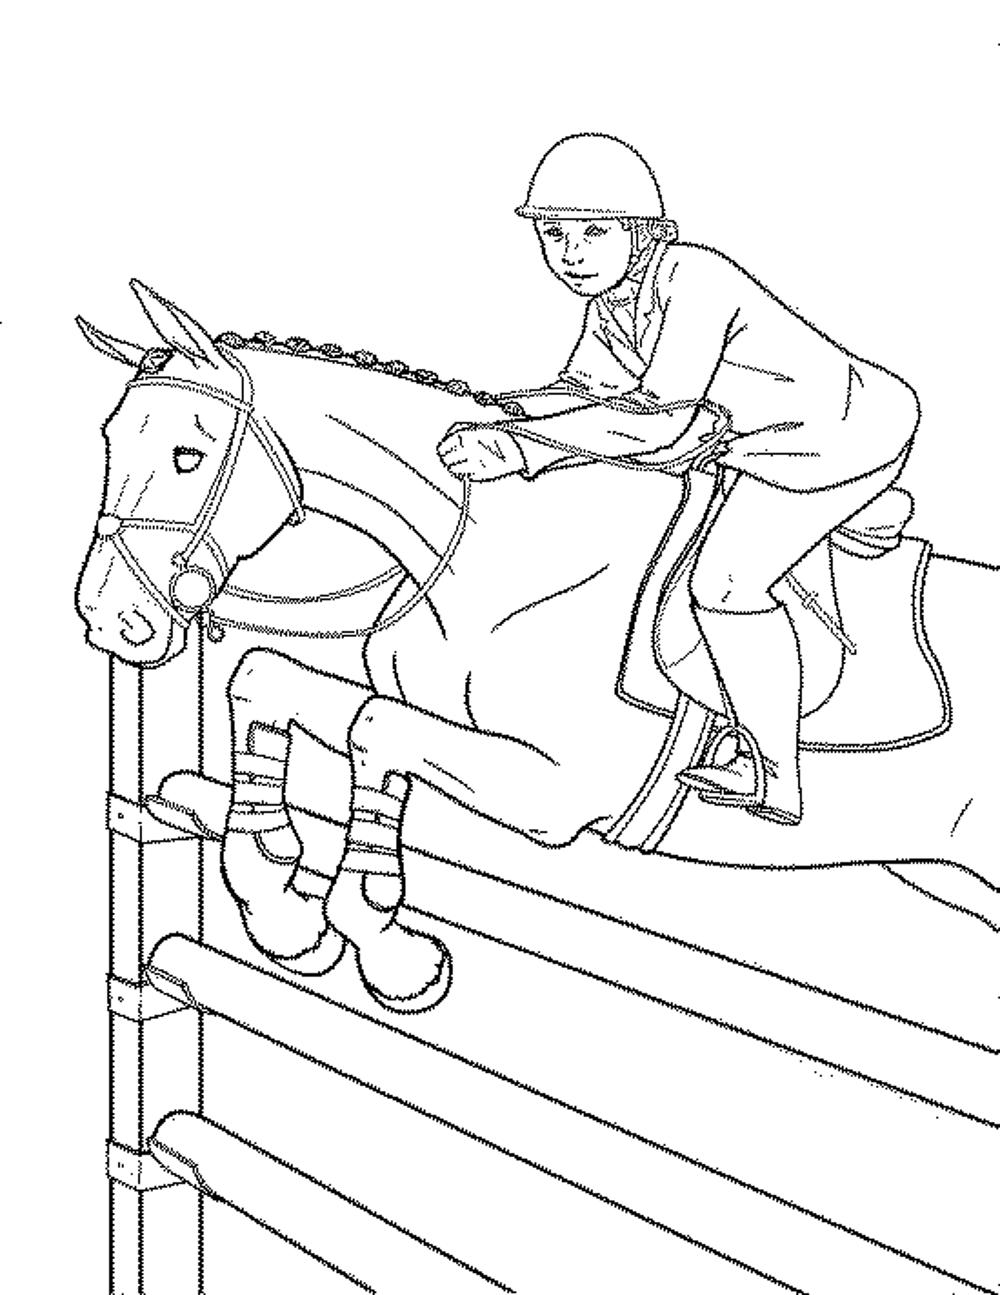 free printable coloring pages of horses Лошади Раскраски для детей Ай да детки free printable pages of horses coloring